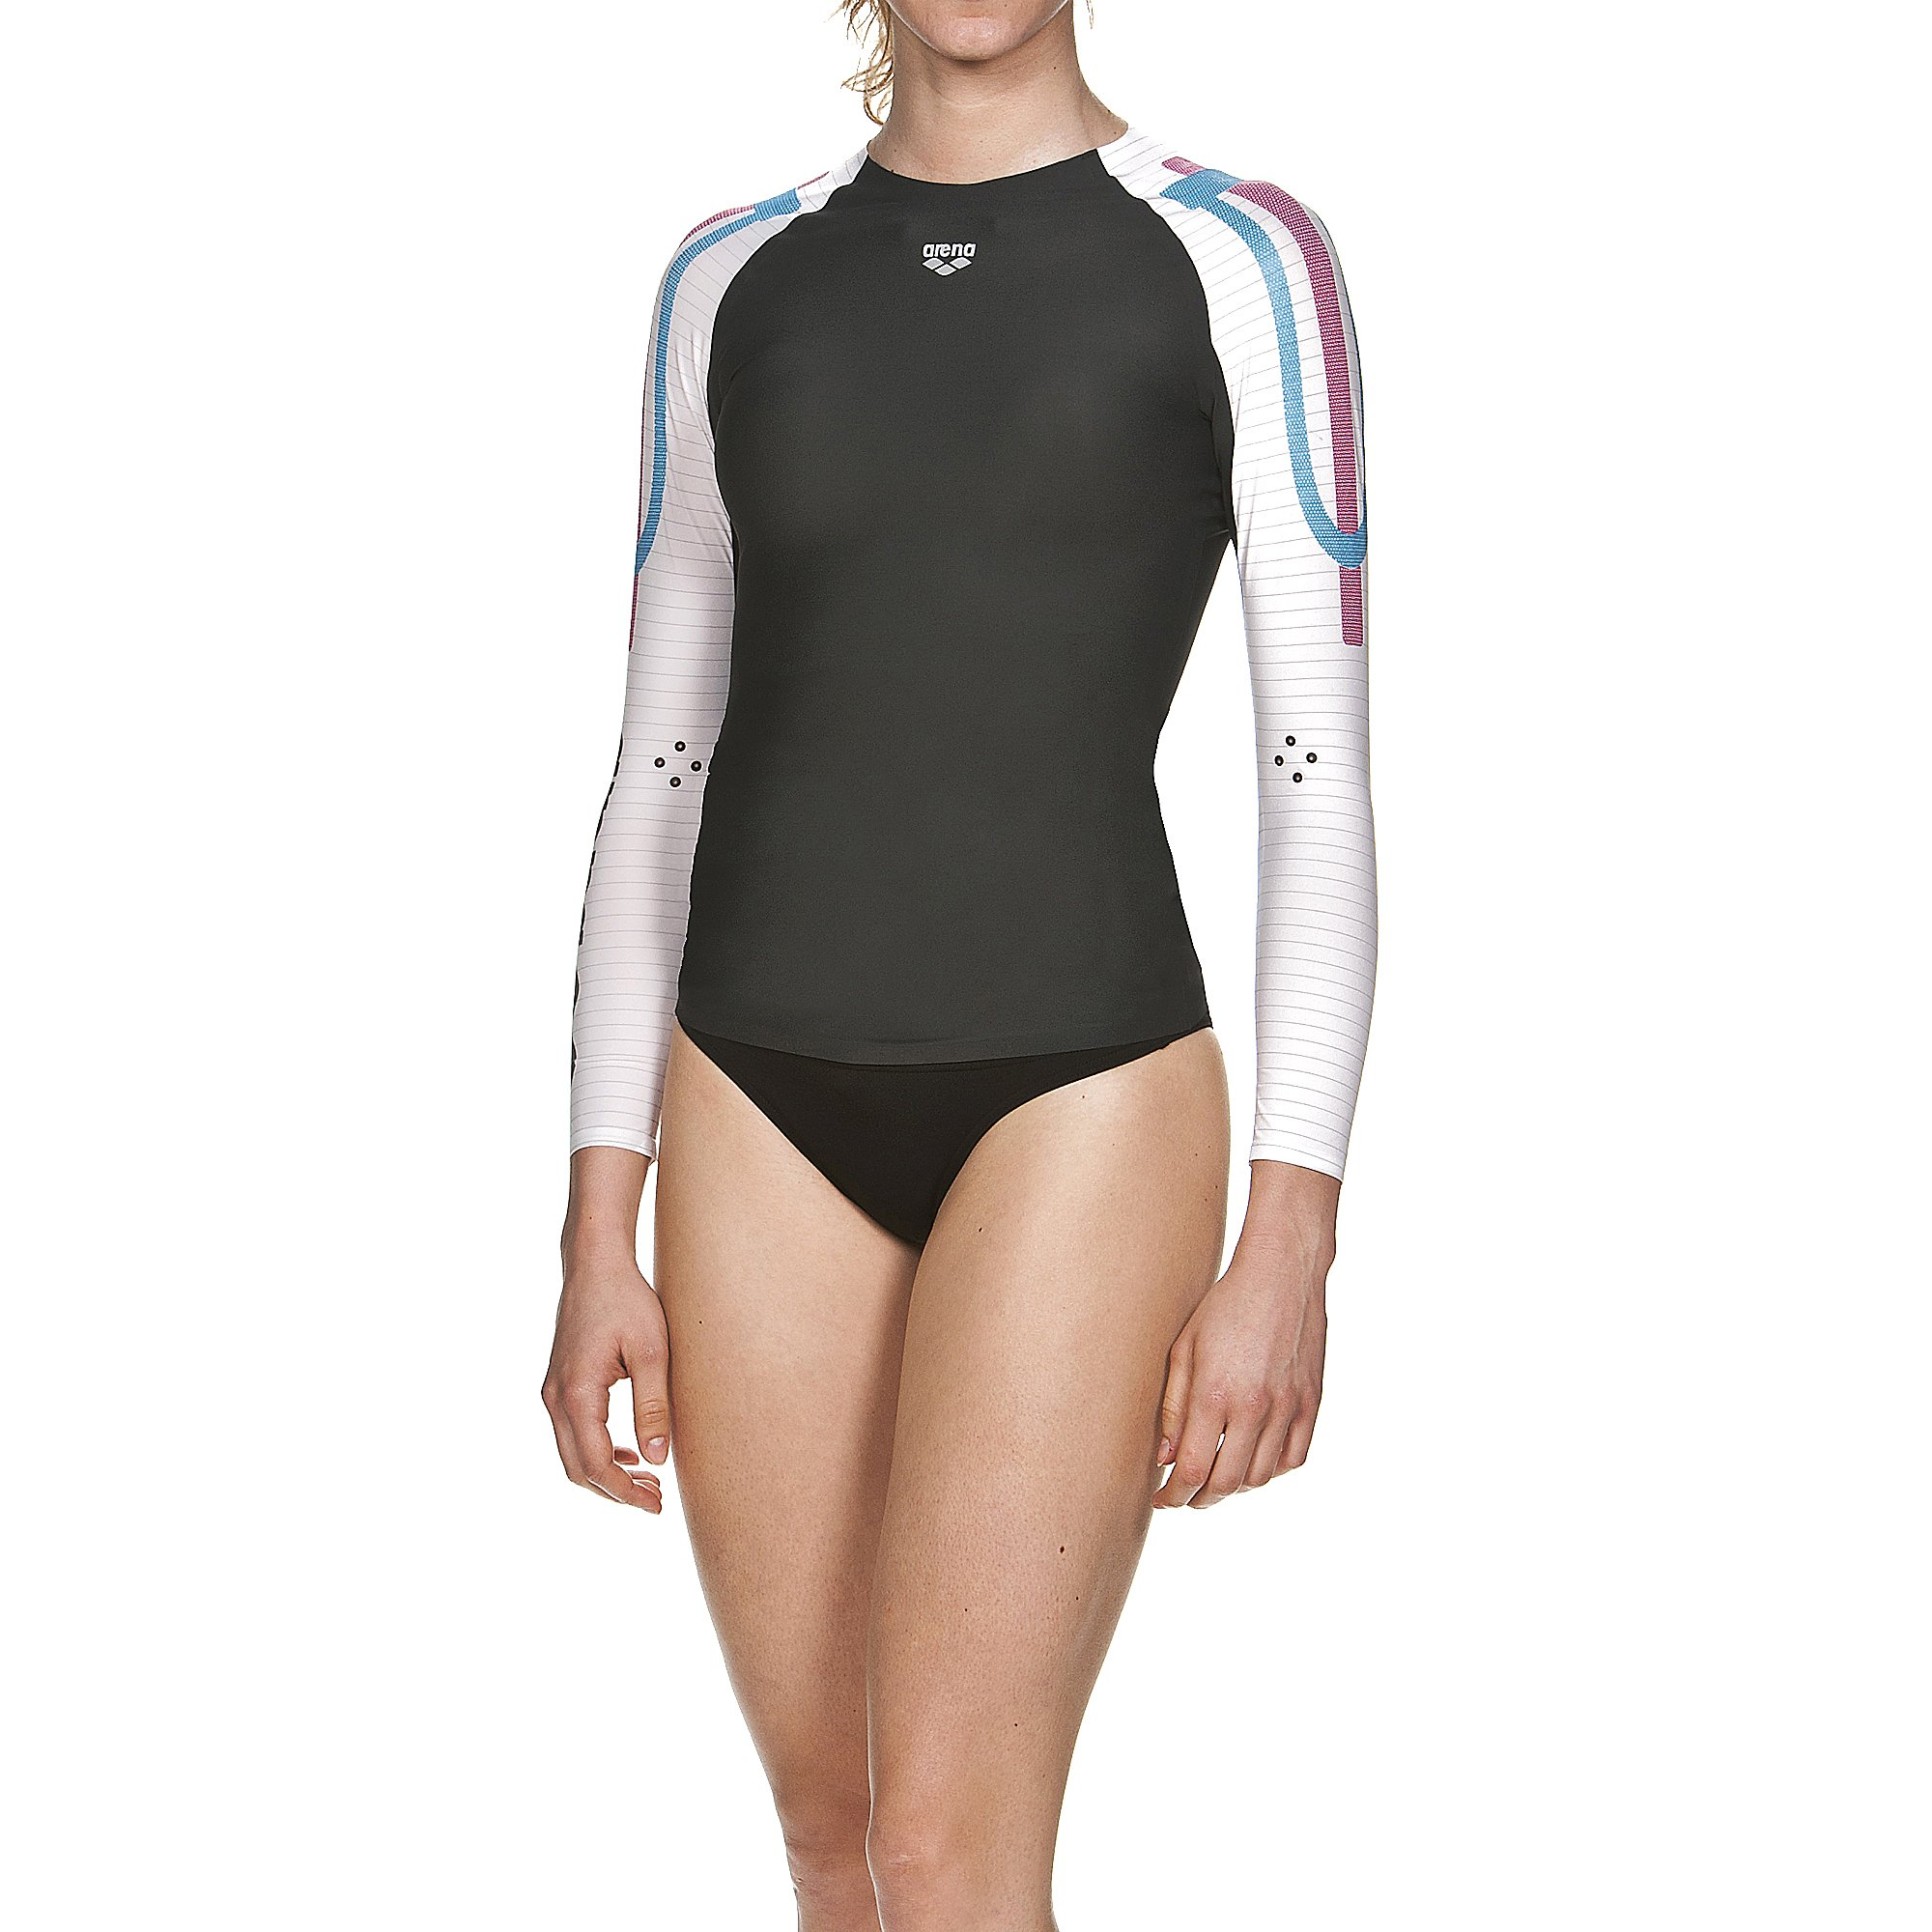 arena 1D141 Women's Long Sleeve Top Powerskin Carbon Compression, Dark Grey/White - XS